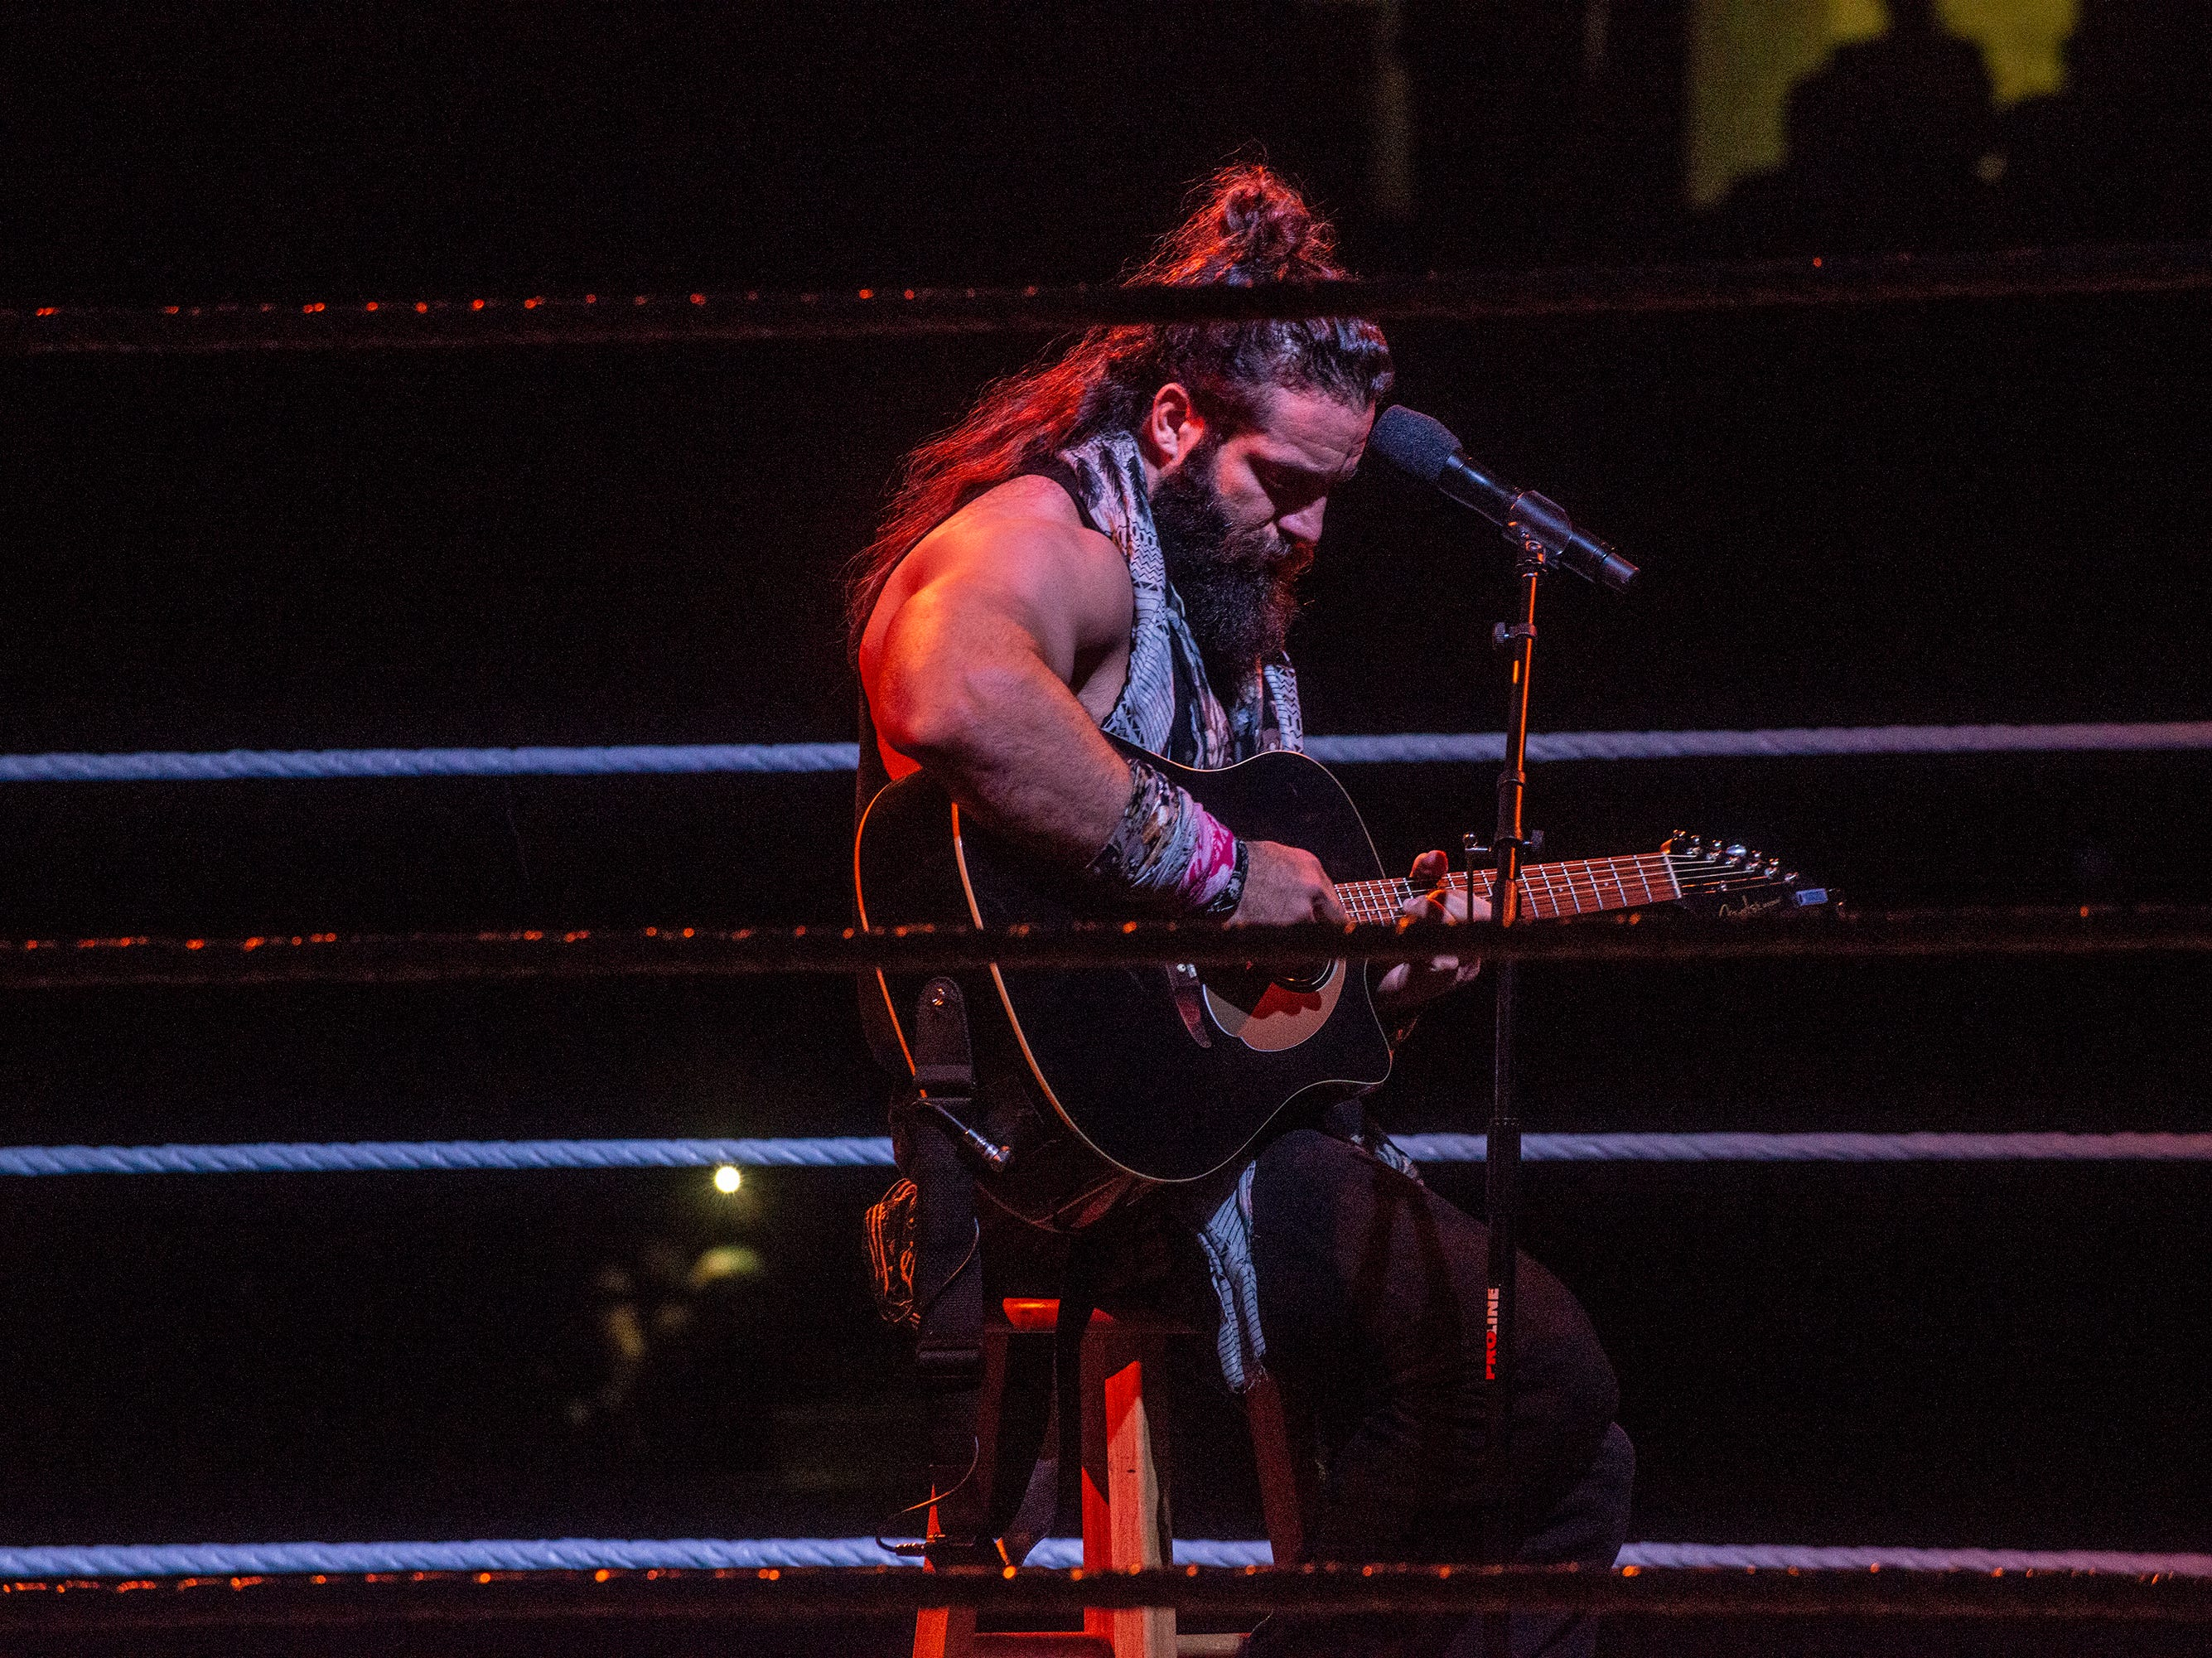 Elias came out ready to play guitar for the crowd. WWE Live Road to Wrestlemania came to Garrett Coliseum in Montgomery on Sunday, Feb. 24, 2019.